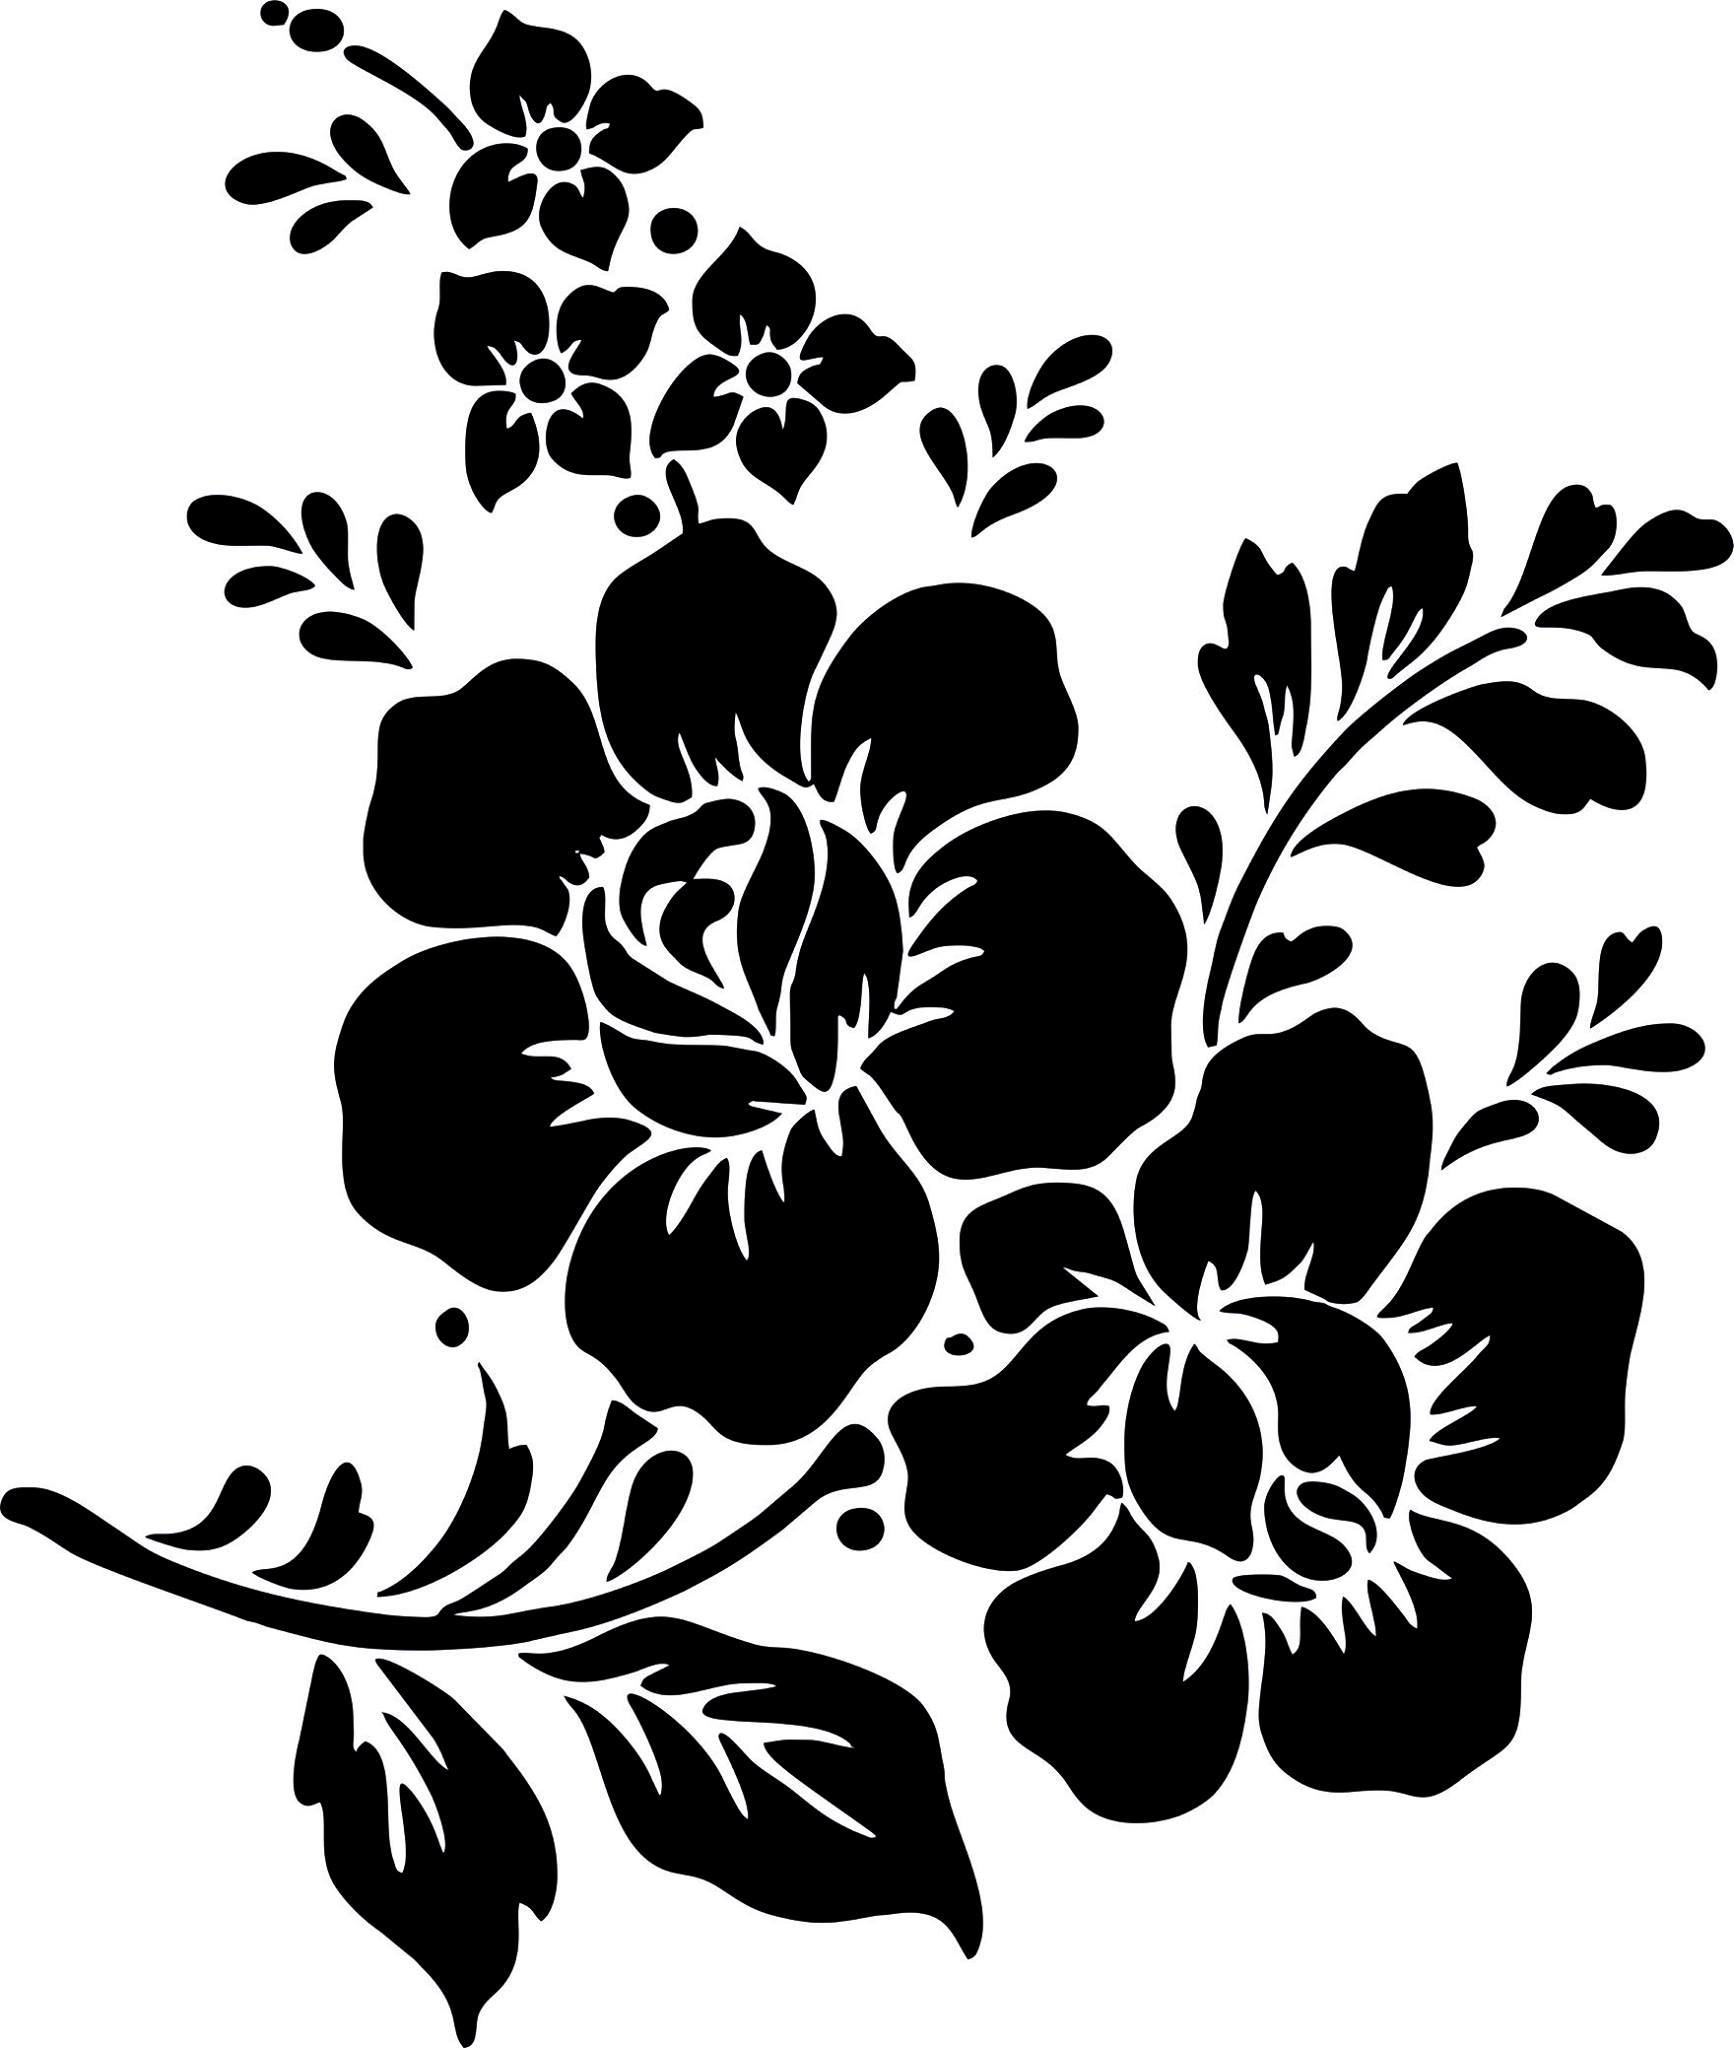 1734x2048 Rose Flower Vector Vector Art Jpg Download Free Vector For Cnc